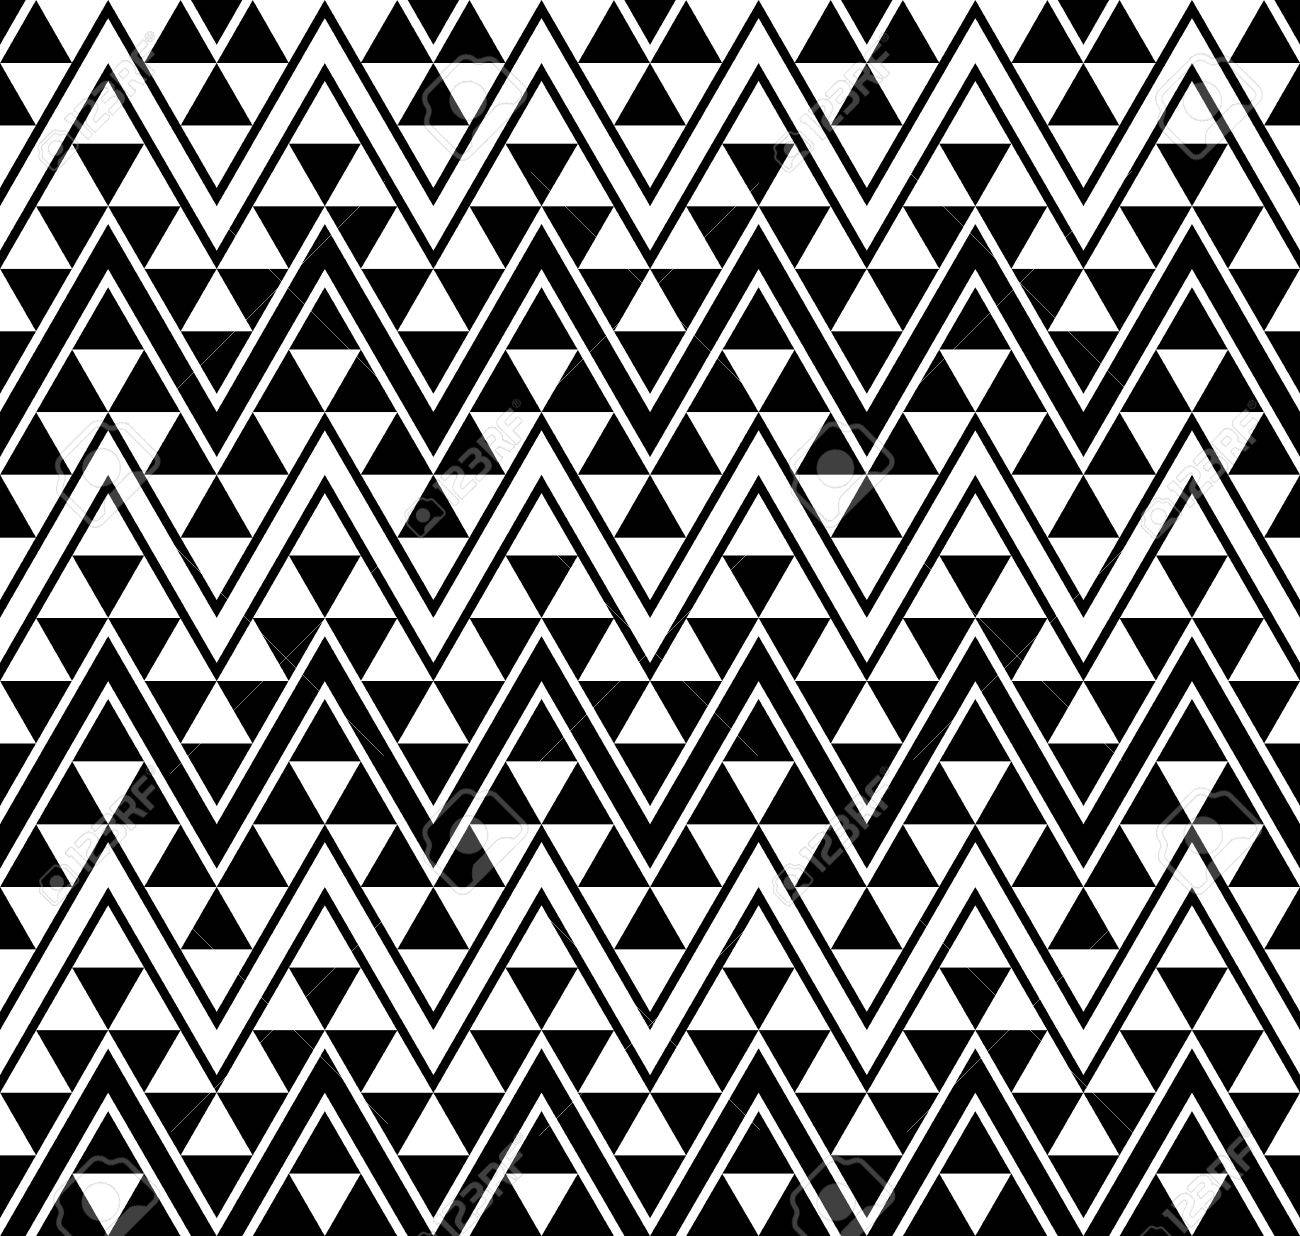 African pattern zigzag pattern background with monochrome geometric black and white stock vector